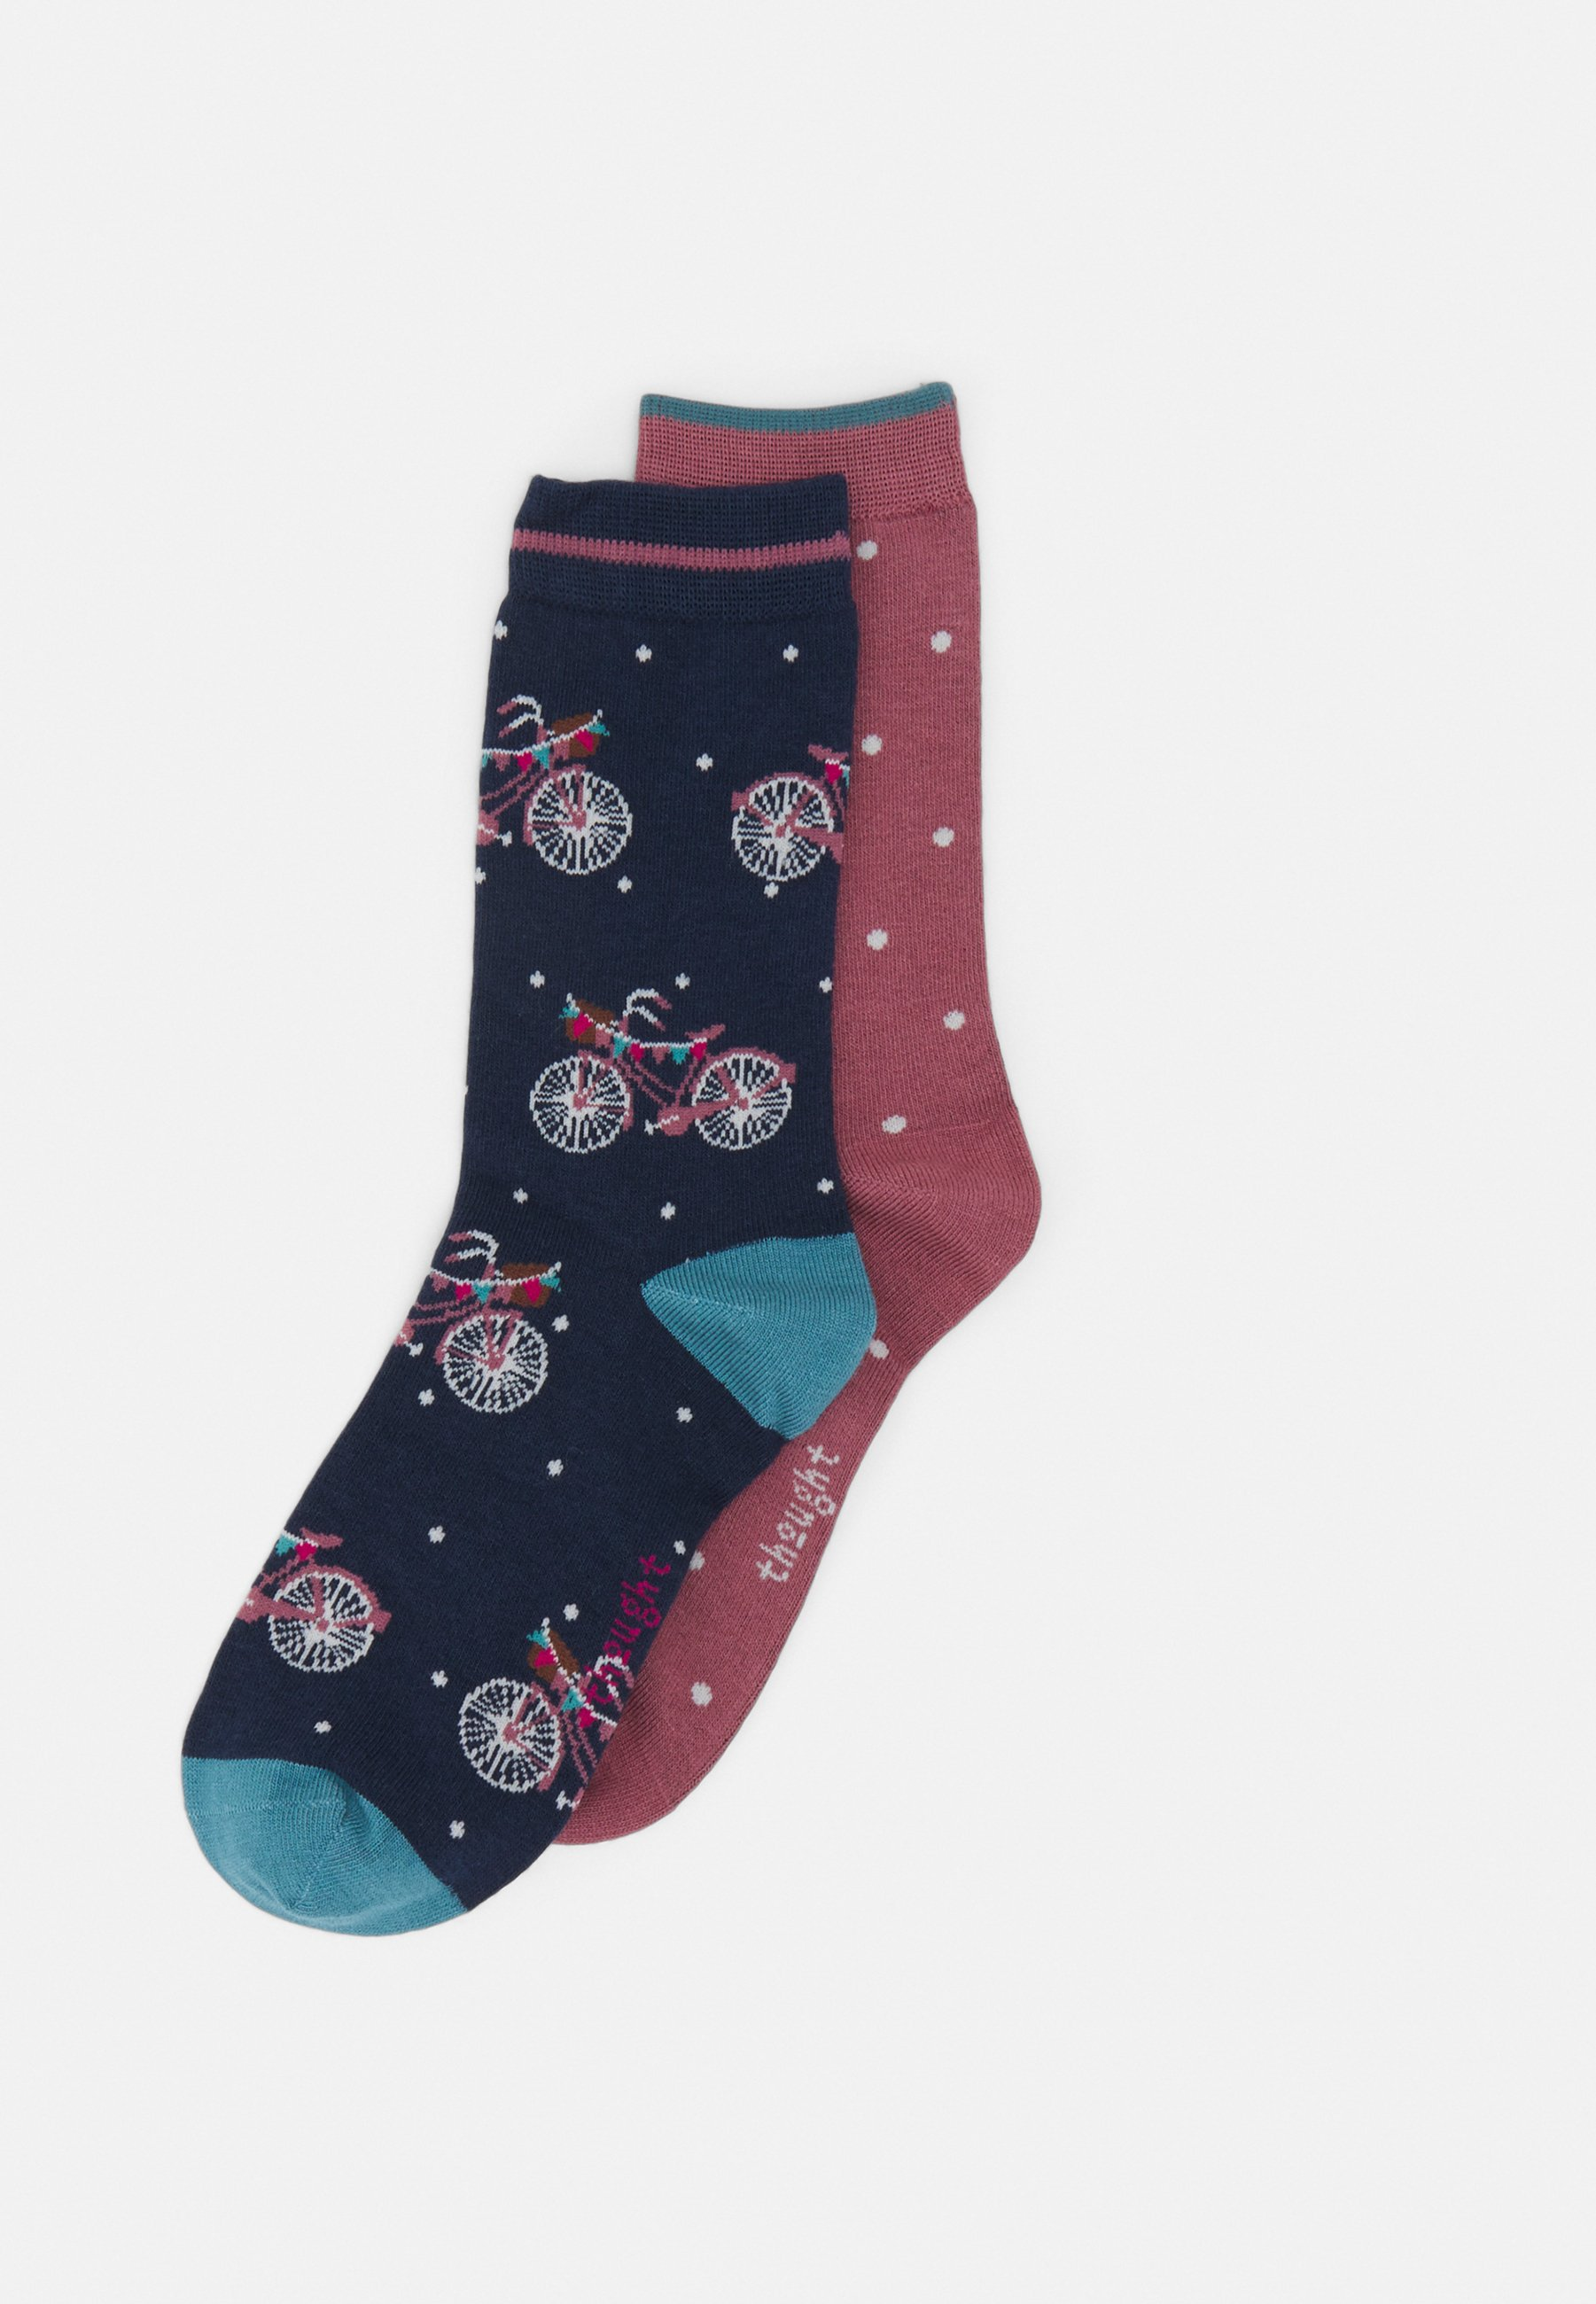 Donna VELMA BICYCLE SOCKS IN A BAG 2 PACK - Calze